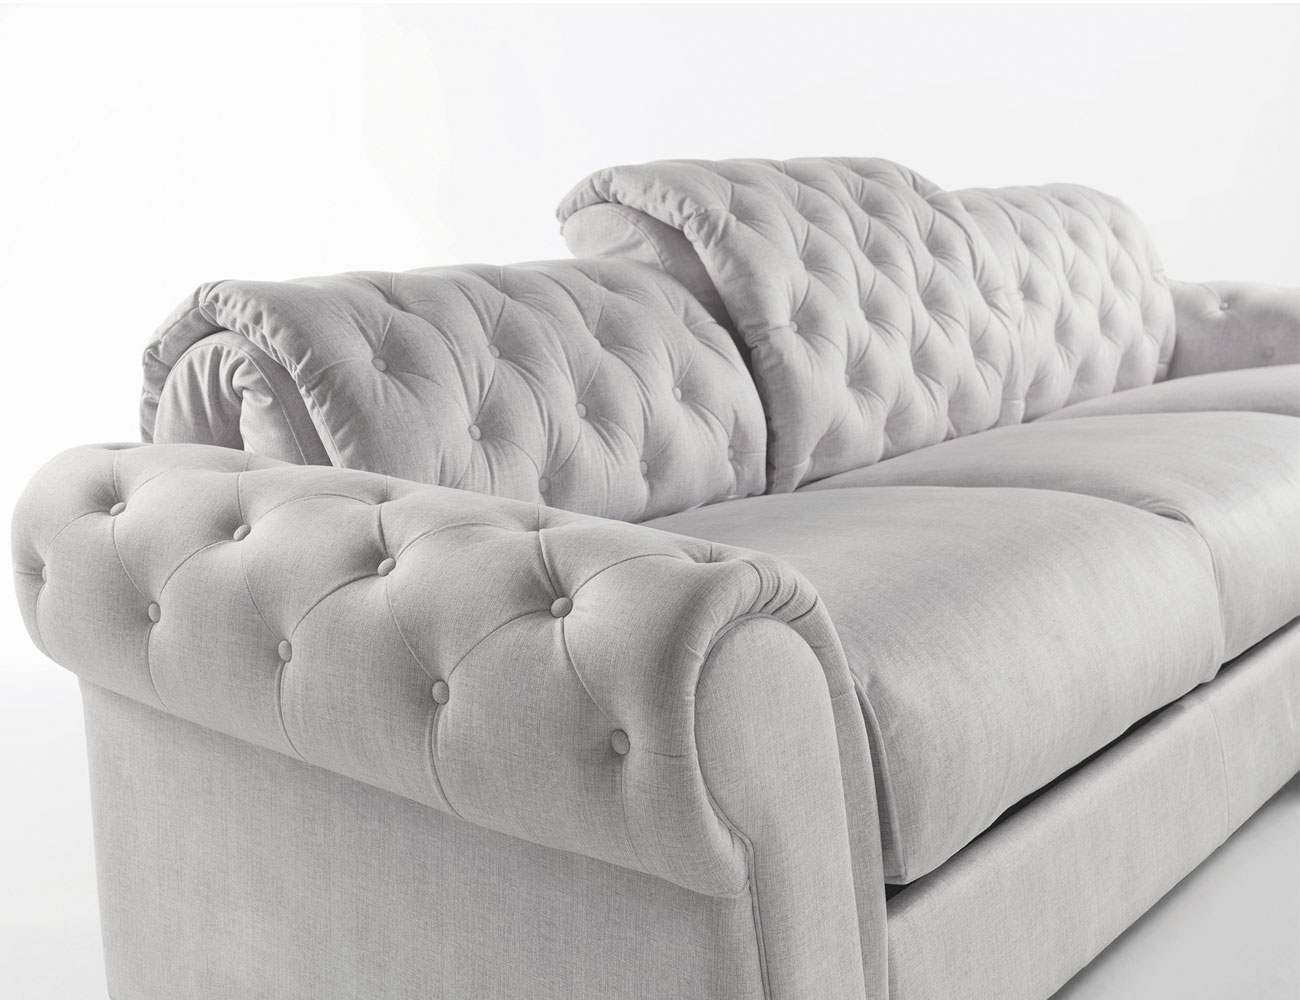 Sofa chaiselongue gran lujo decorativo capitone blanco tela 135